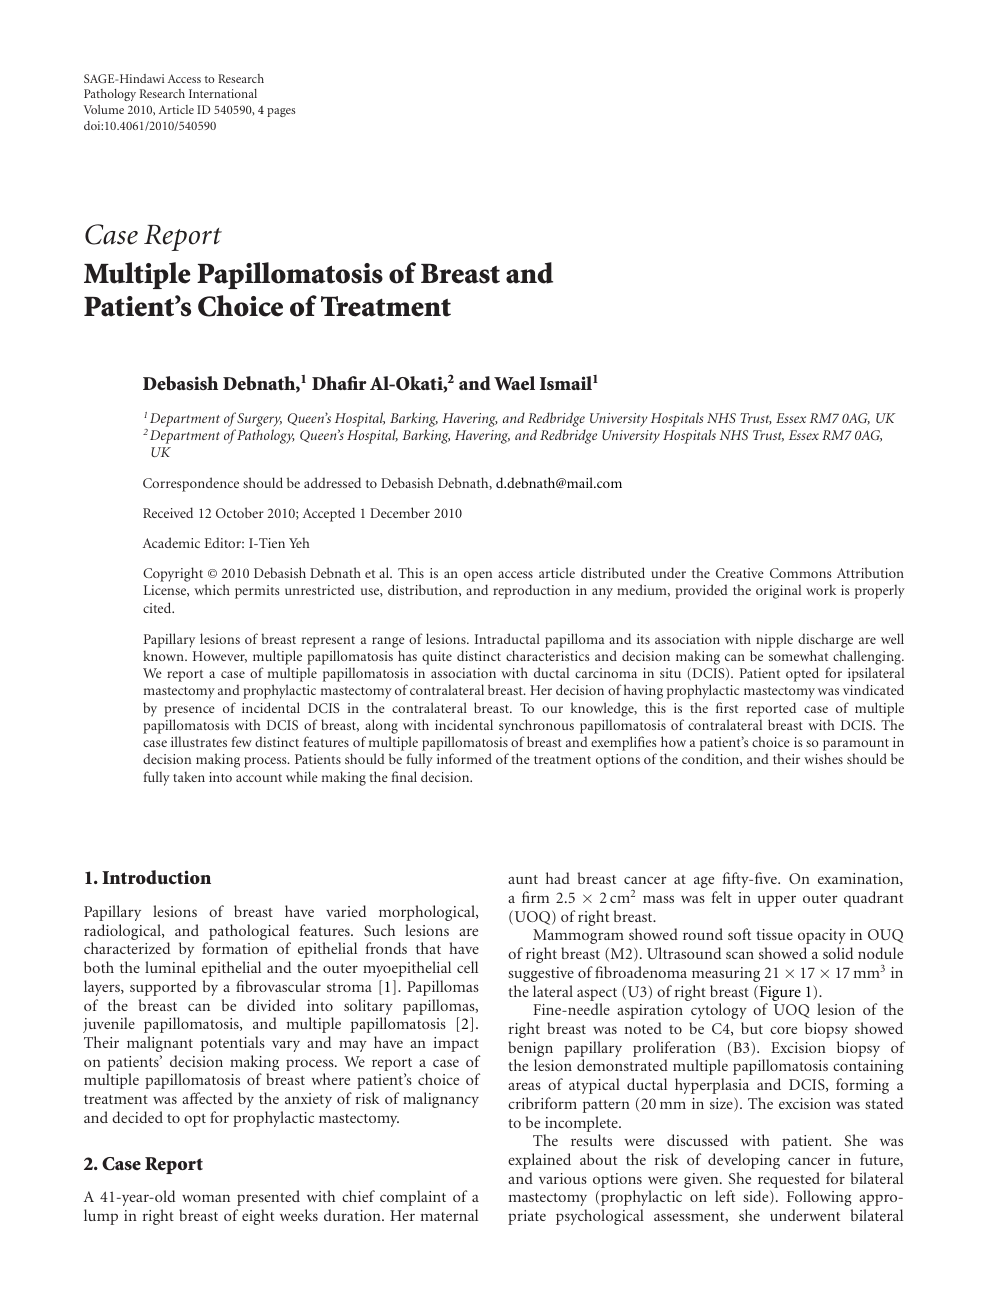 Intraductal papilloma and dcis - Hpv in uvula